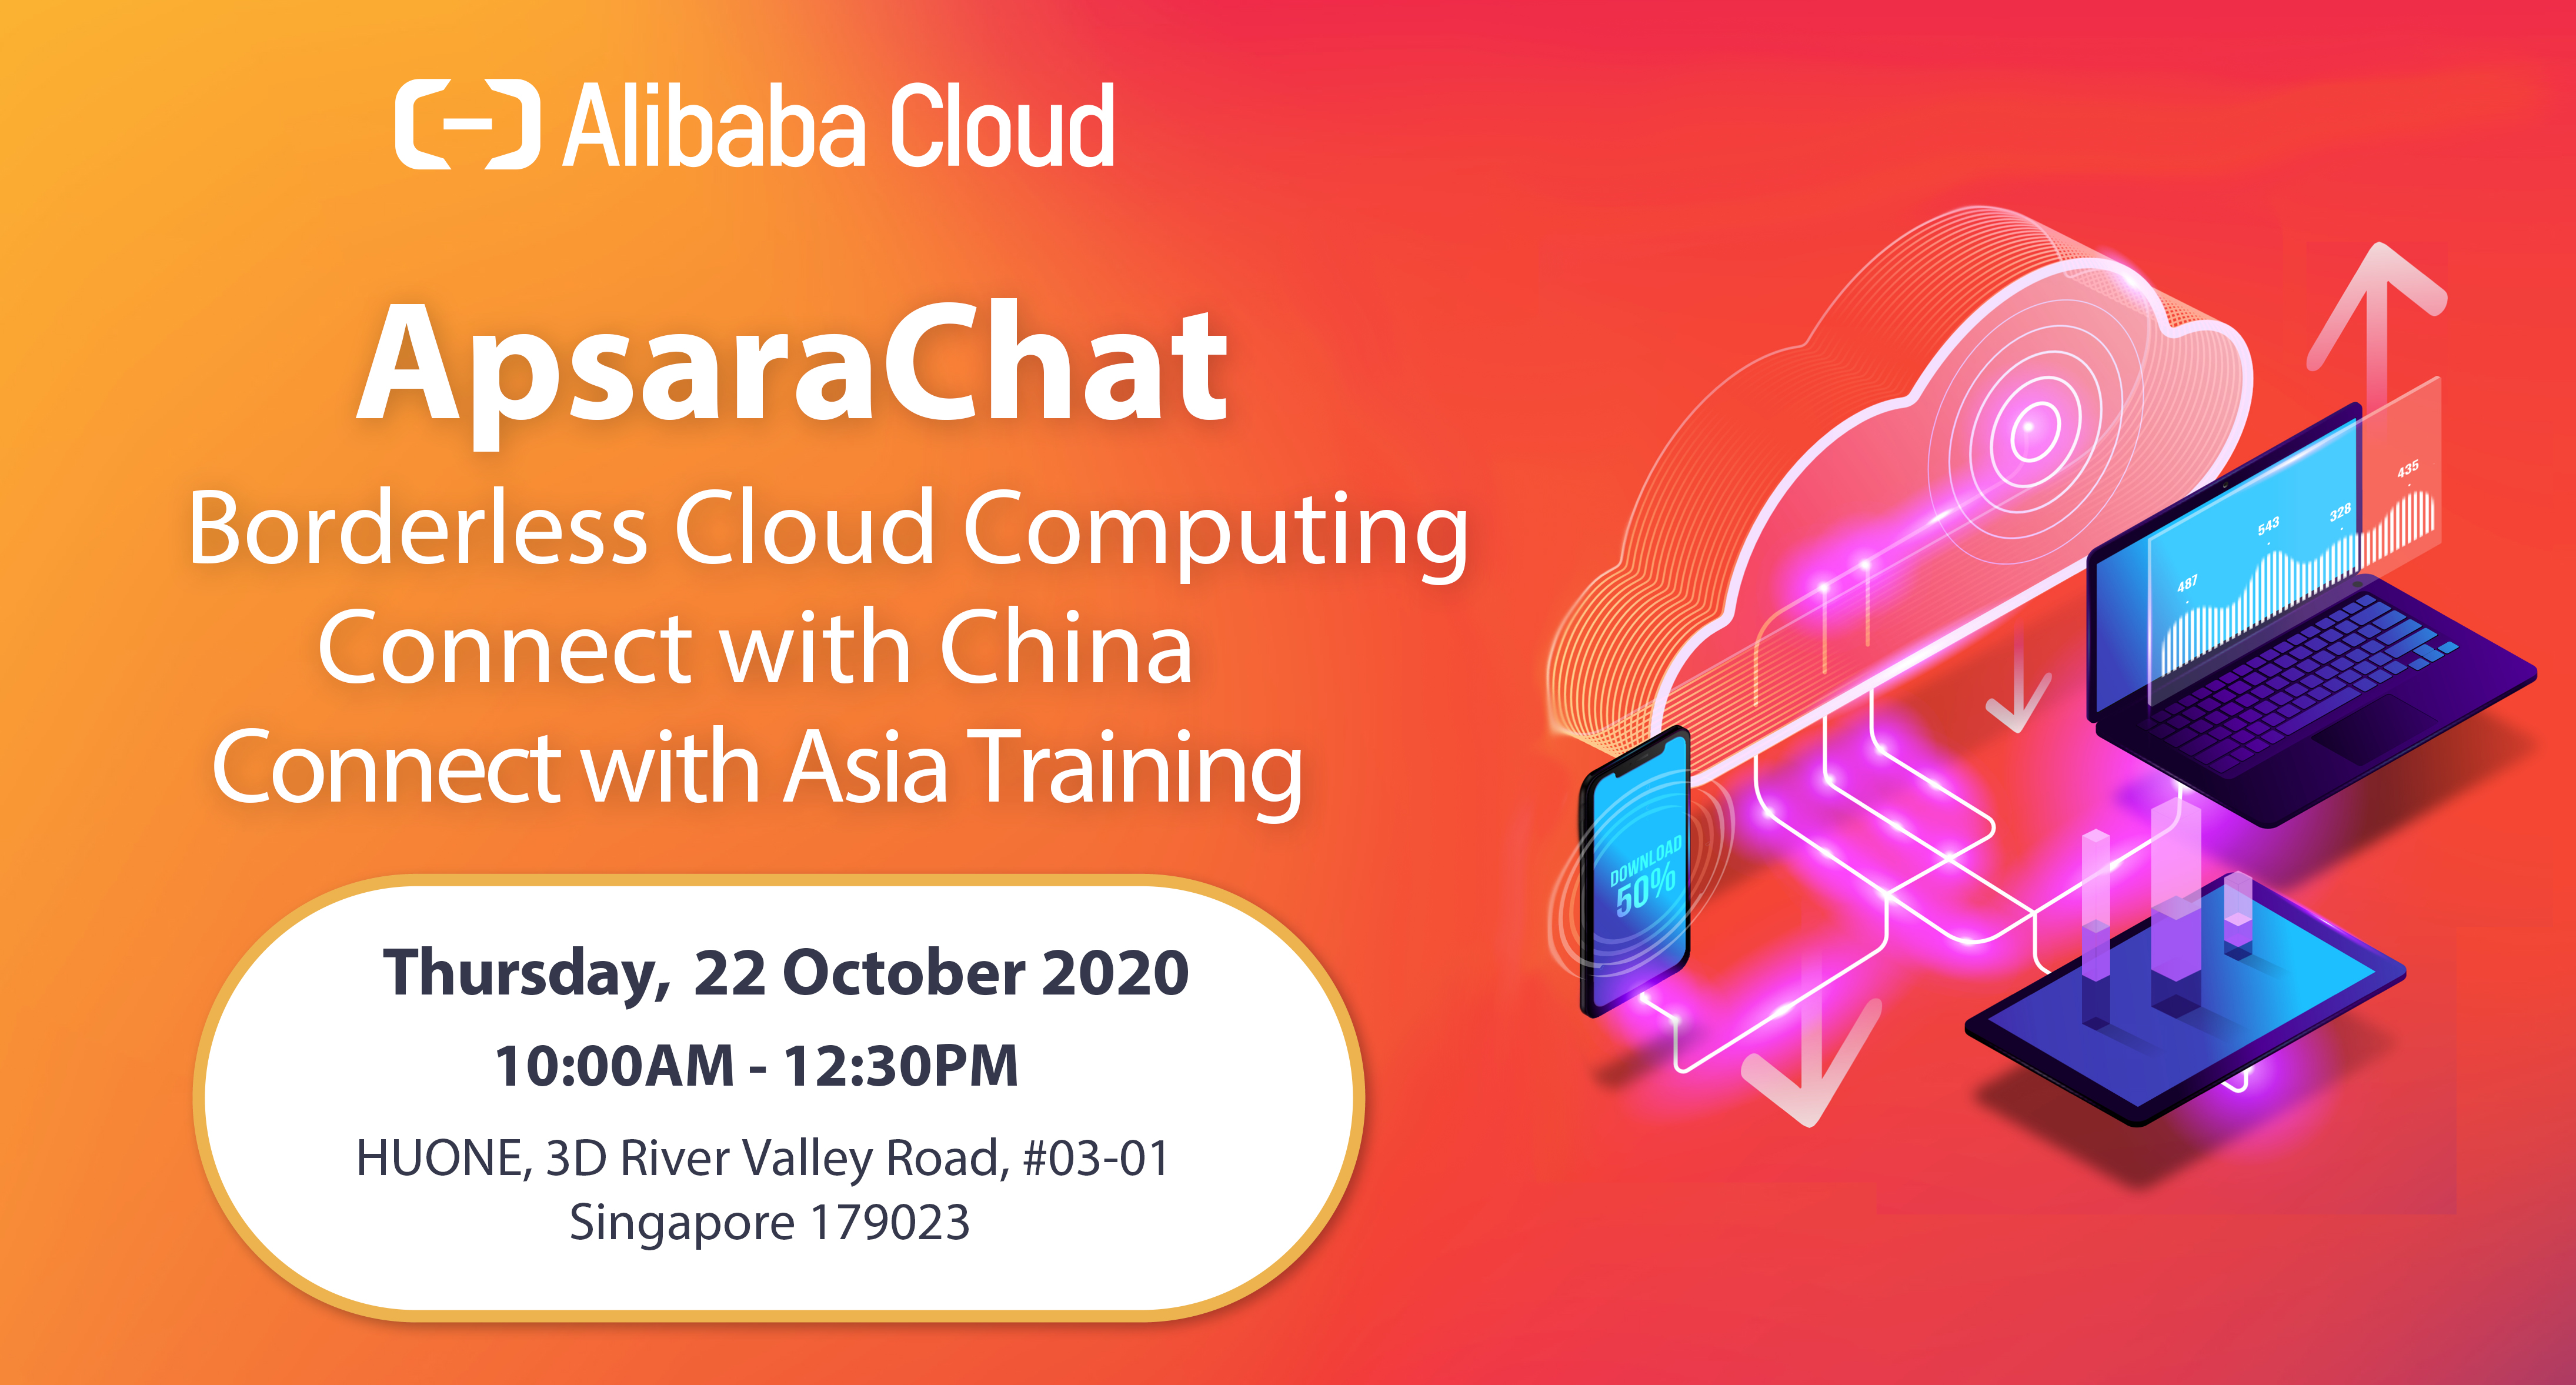 Singapore ApsaraChat: Borderless Cloud Computing: Connect with China, Connect with Asia Training